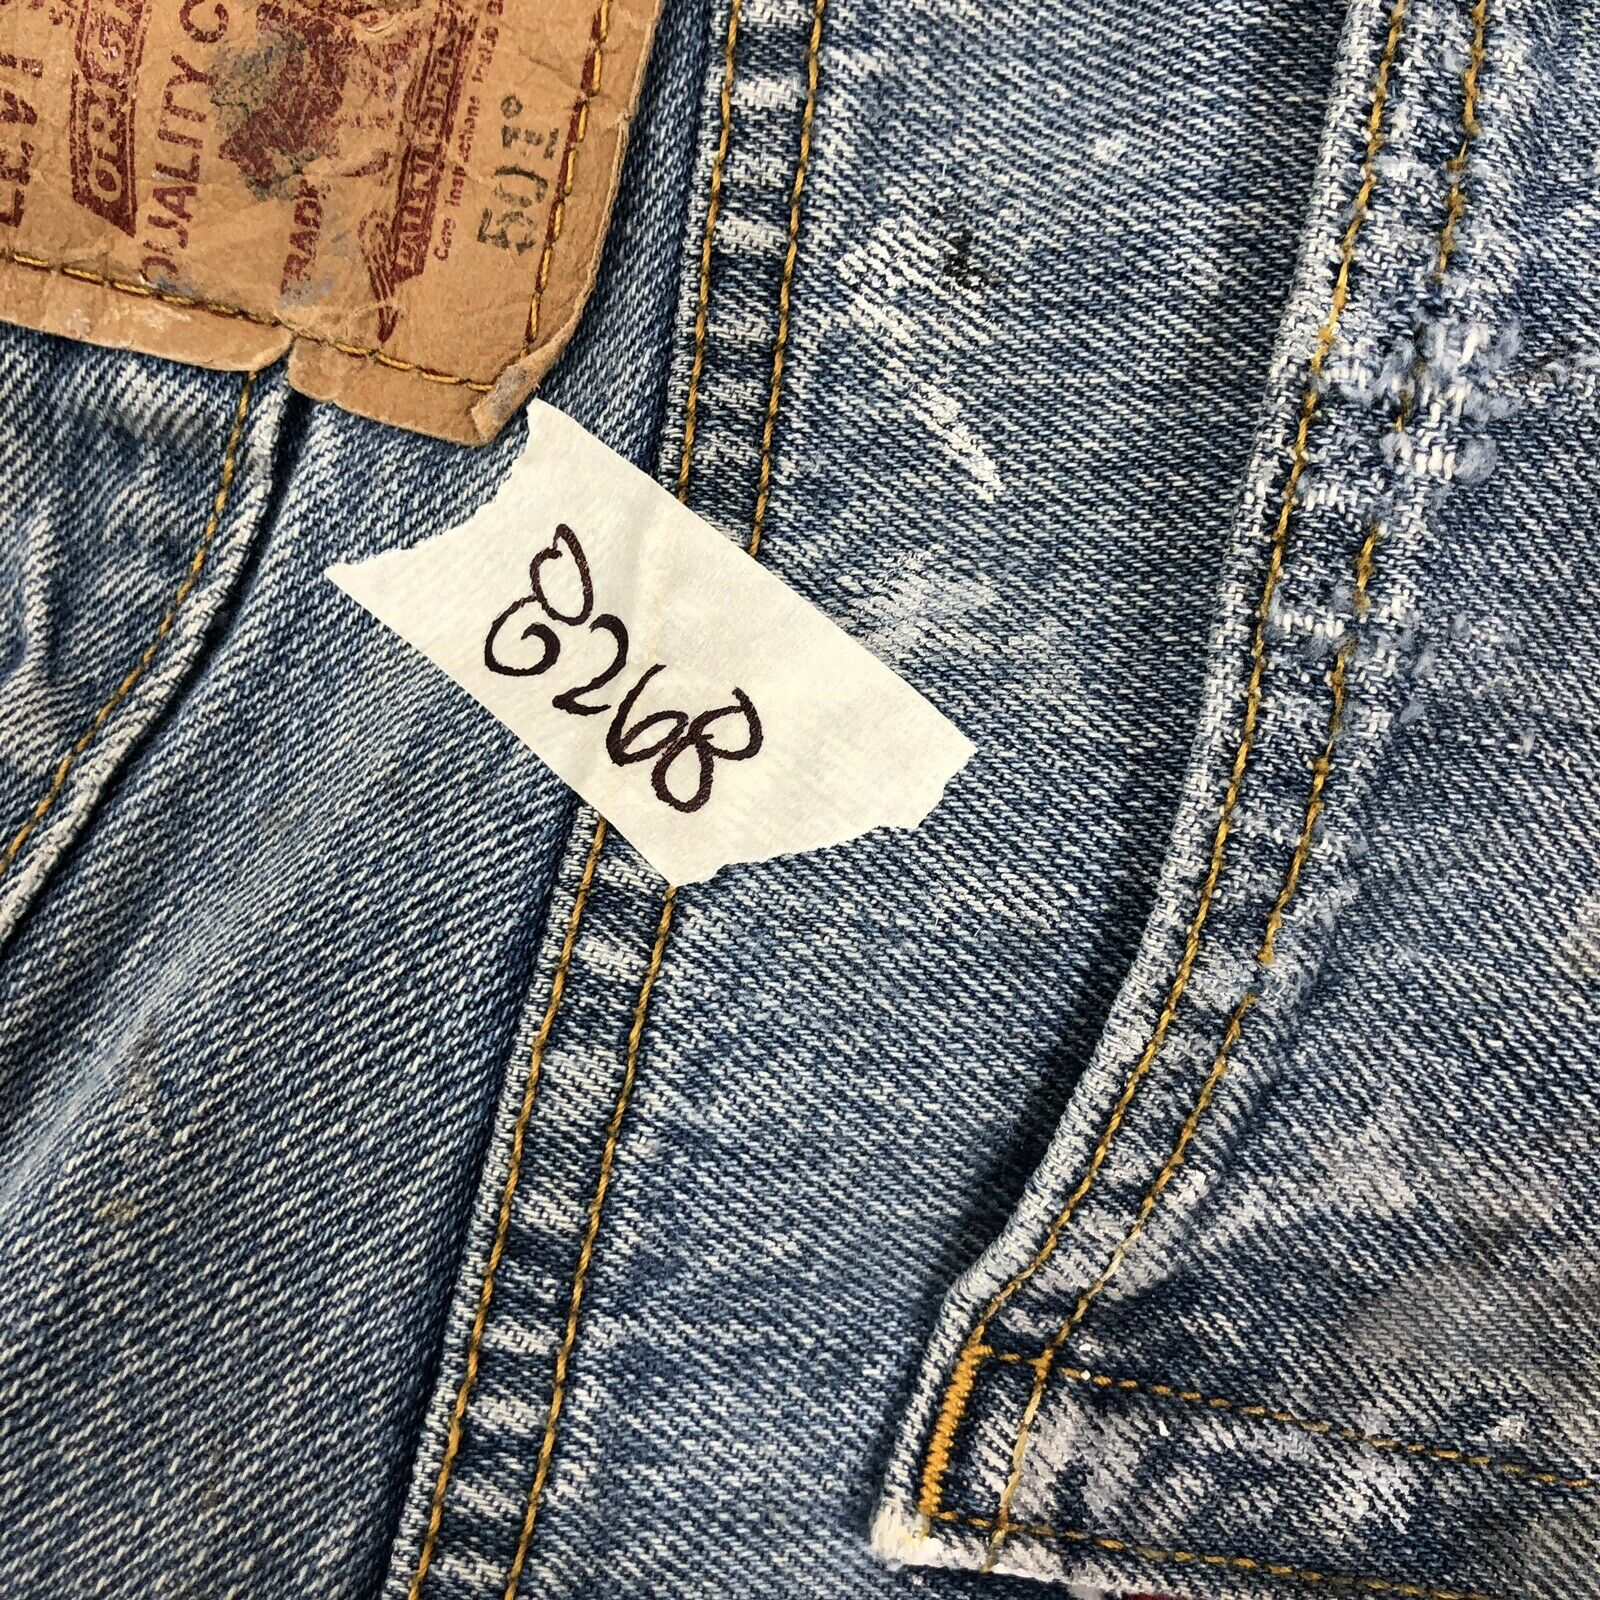 vtg 90s LEVI'S 501 Faded Work Worn Button Fly Jea… - image 11